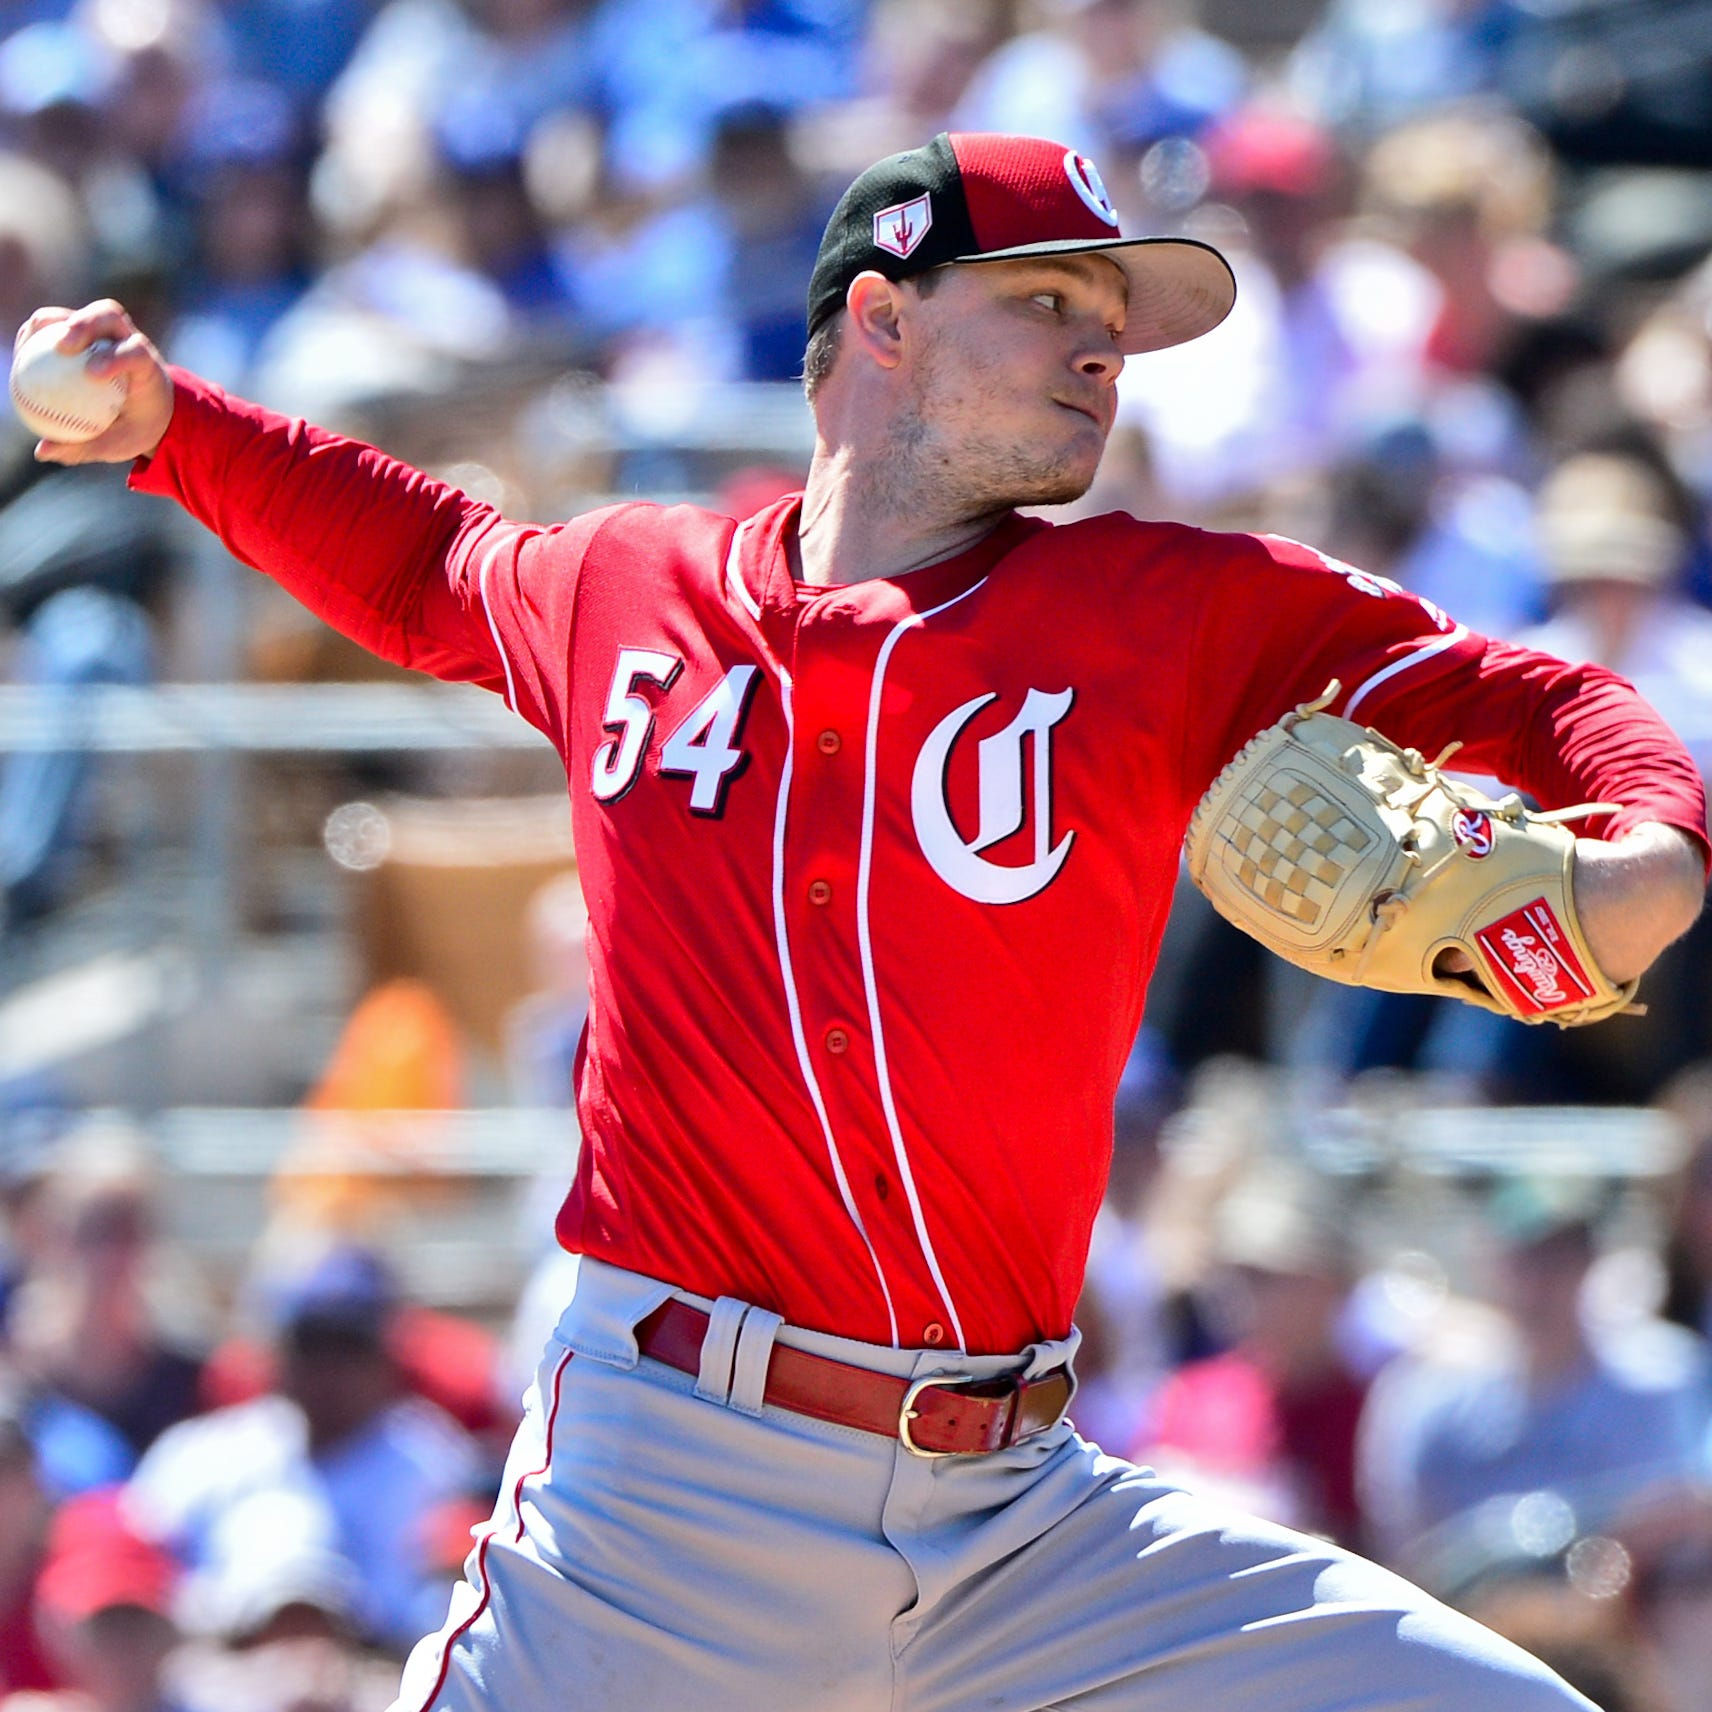 Sonny Gray will be thinking about his dad Saturday when he makes his Cincinnati Reds debut